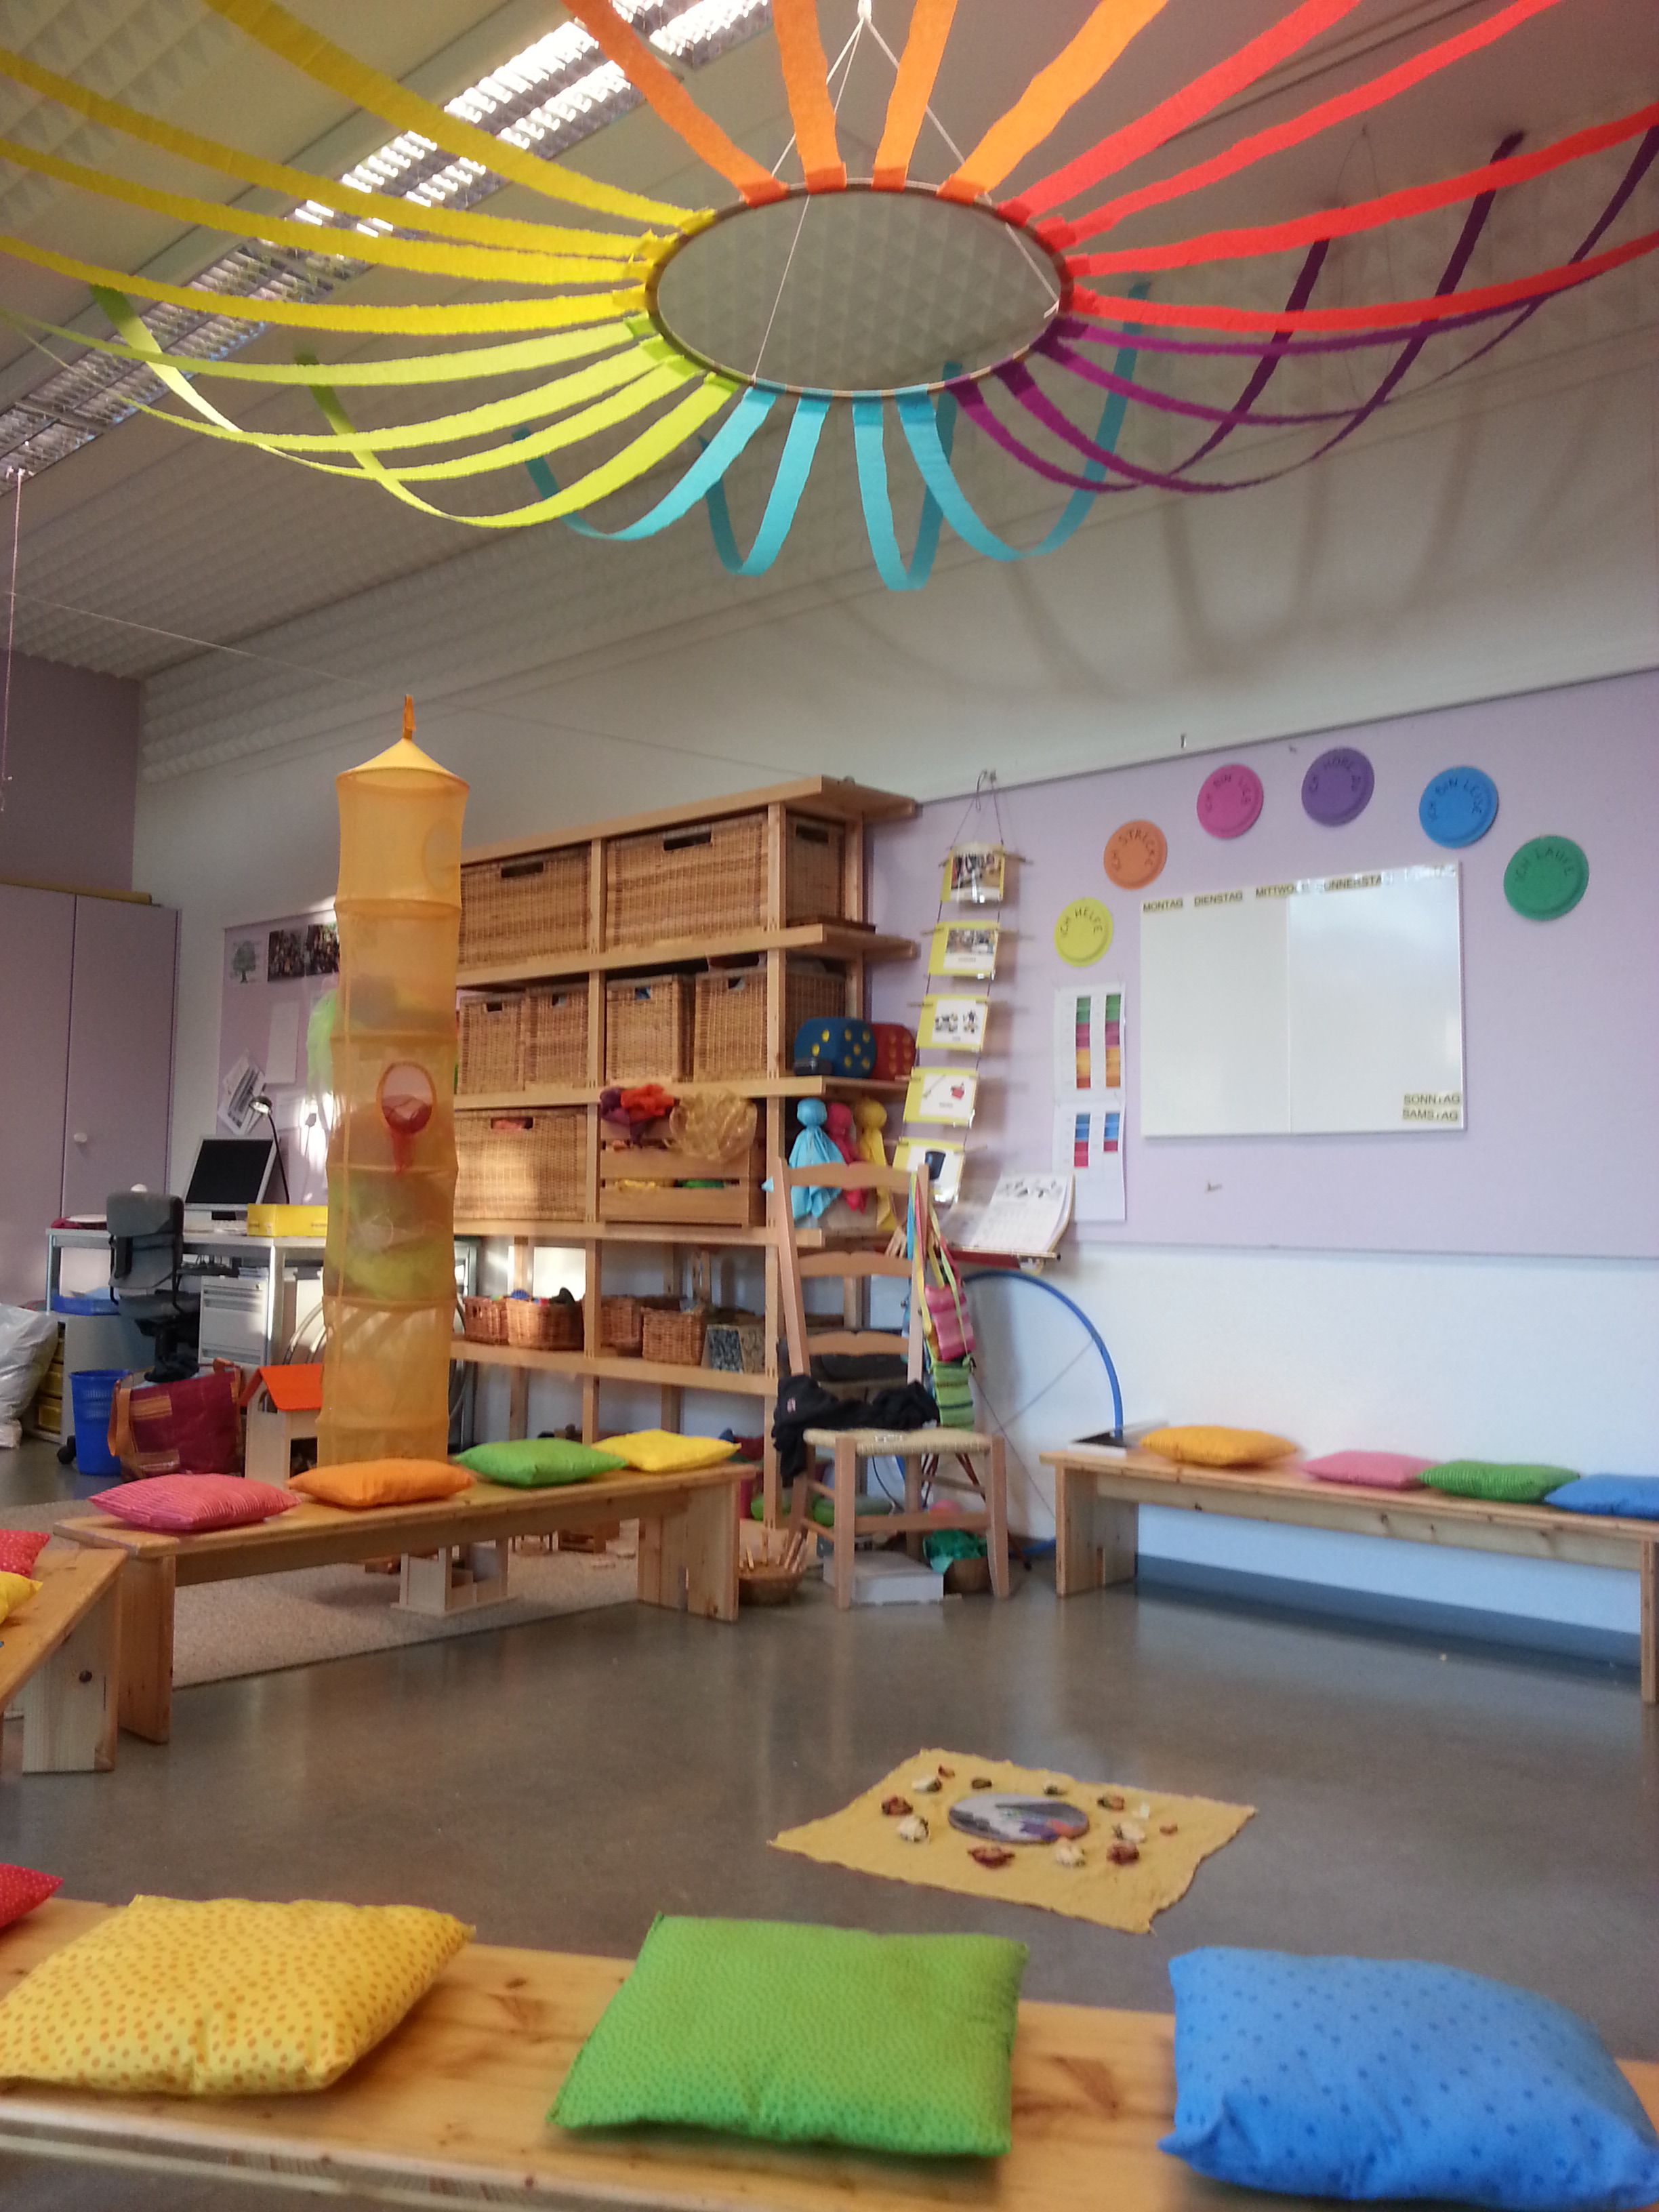 Great Ideas For School Color Theme Kindergarten Love The Hoop And Crepe Paper Suspended From The Ceiling Awesome